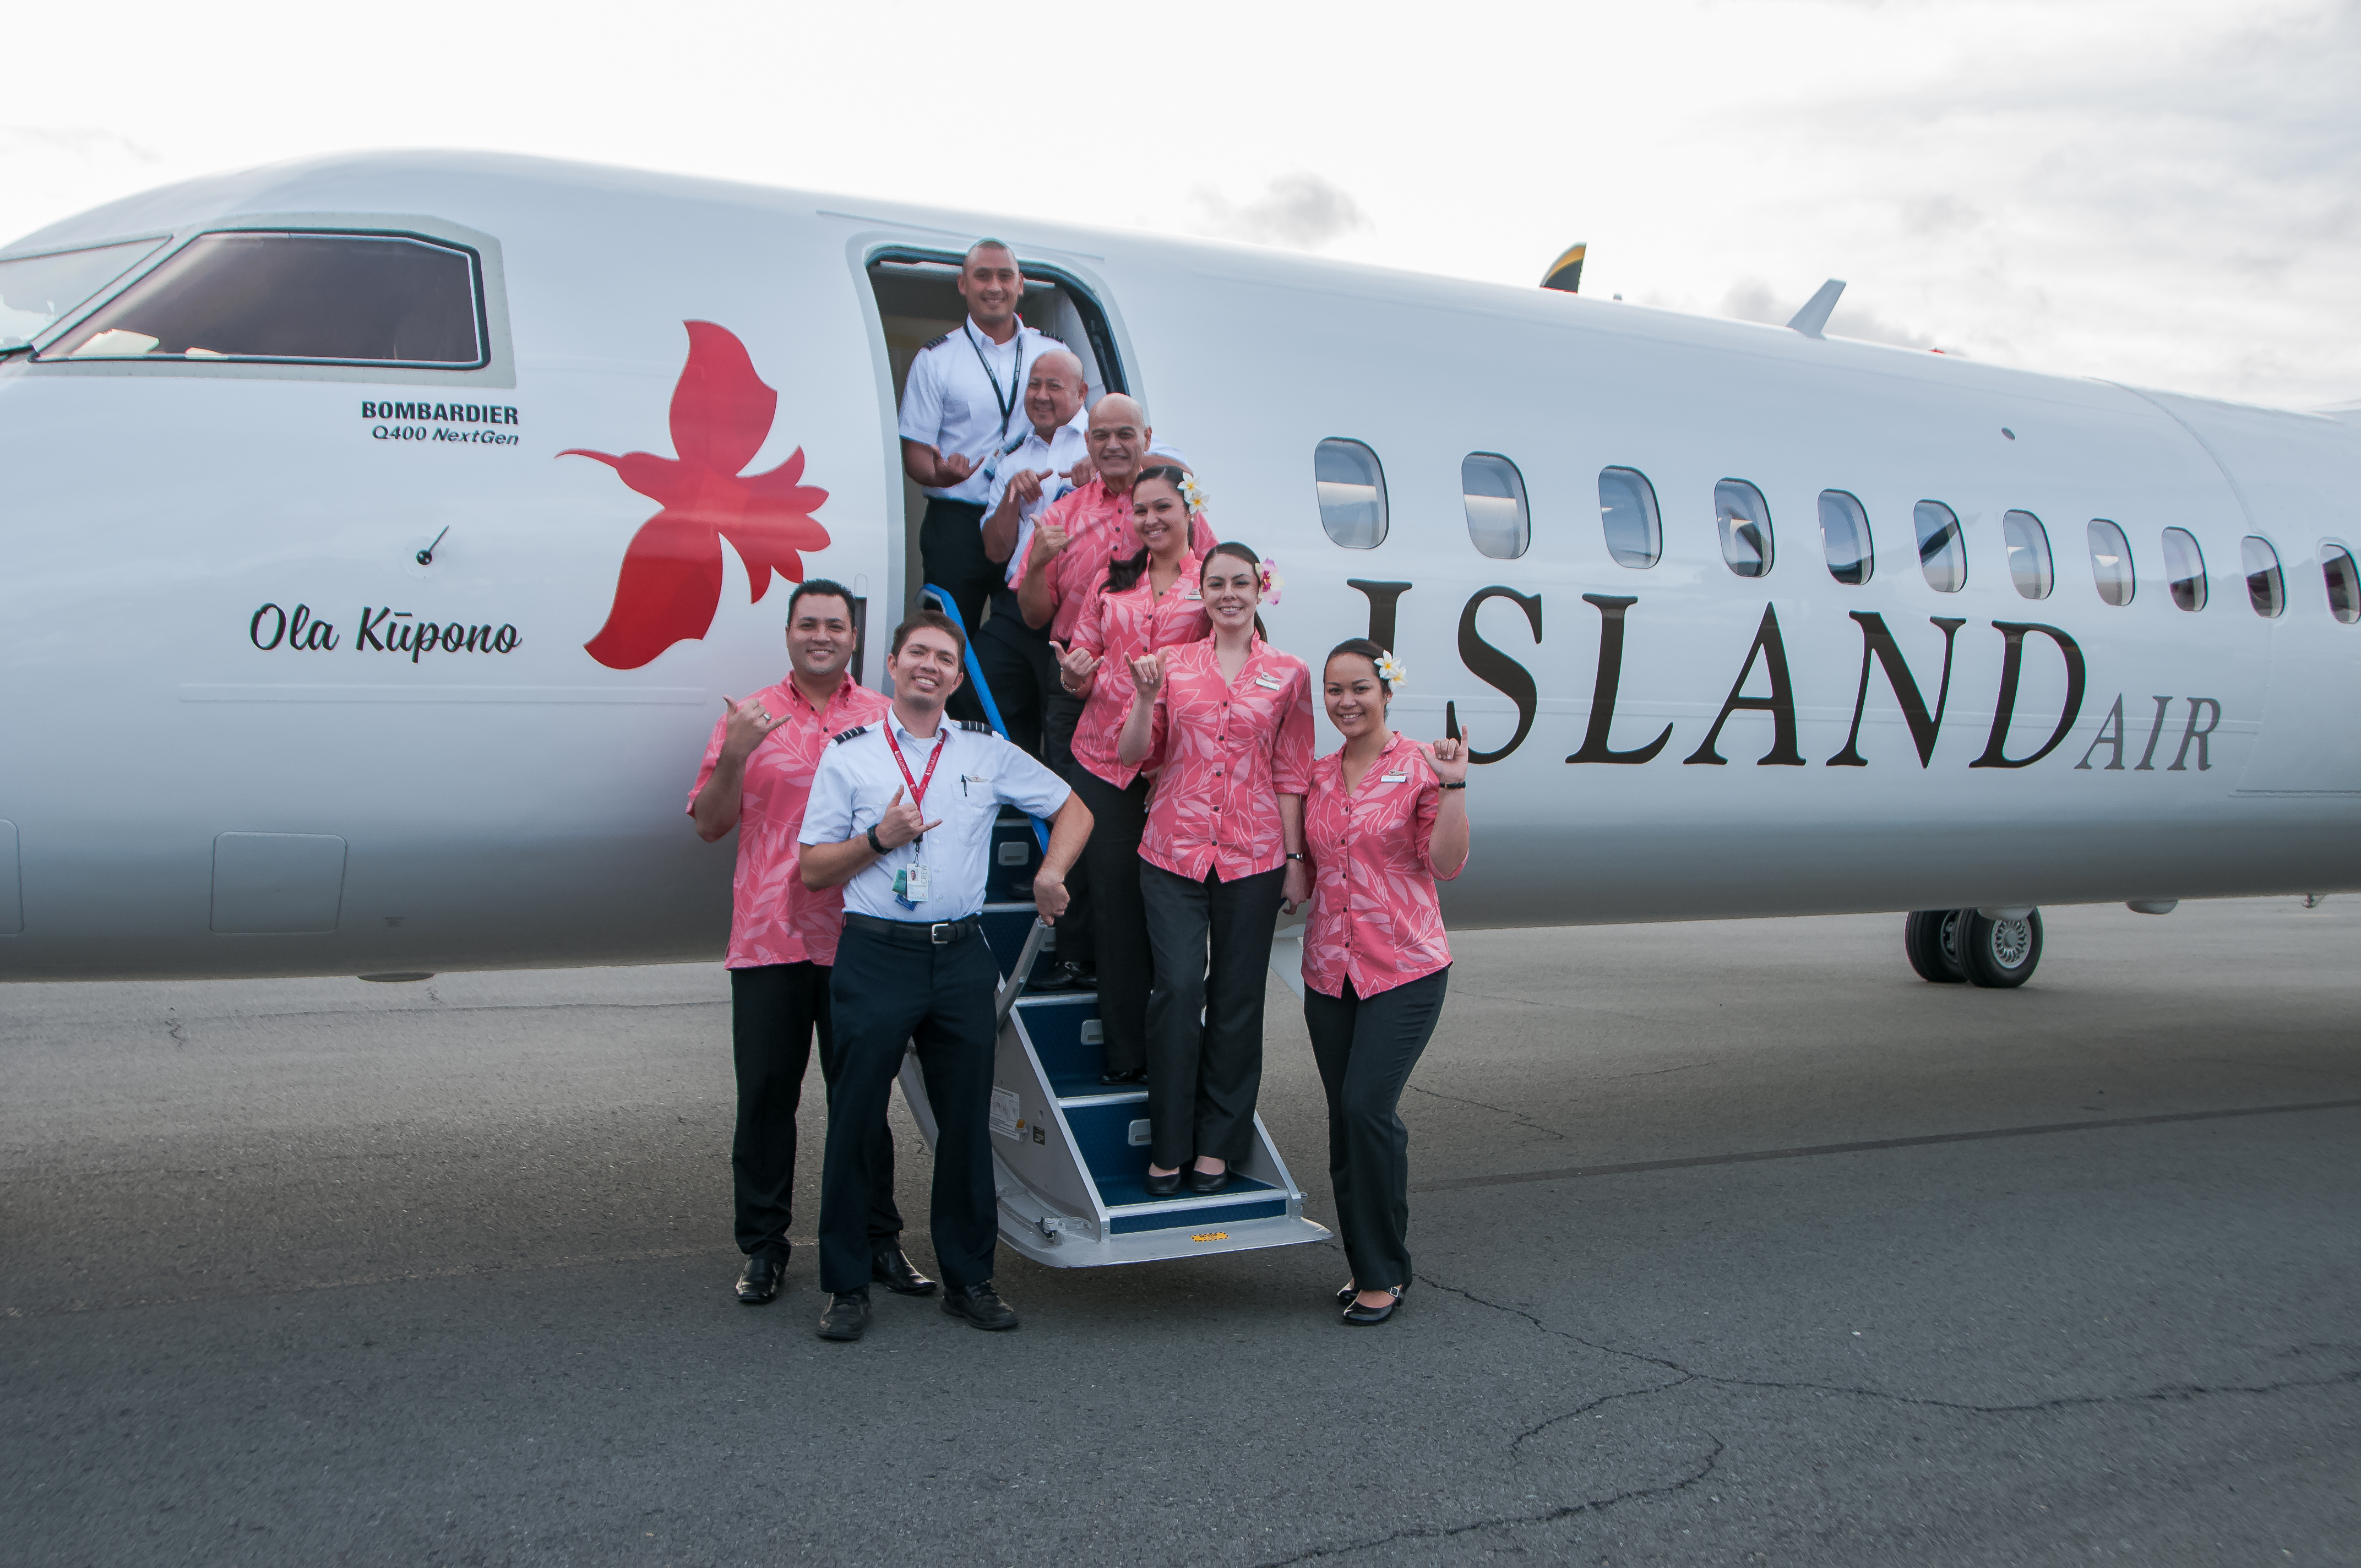 Island Air/H.I.S. Offer Flight/Hotel Packages | Big Island Now